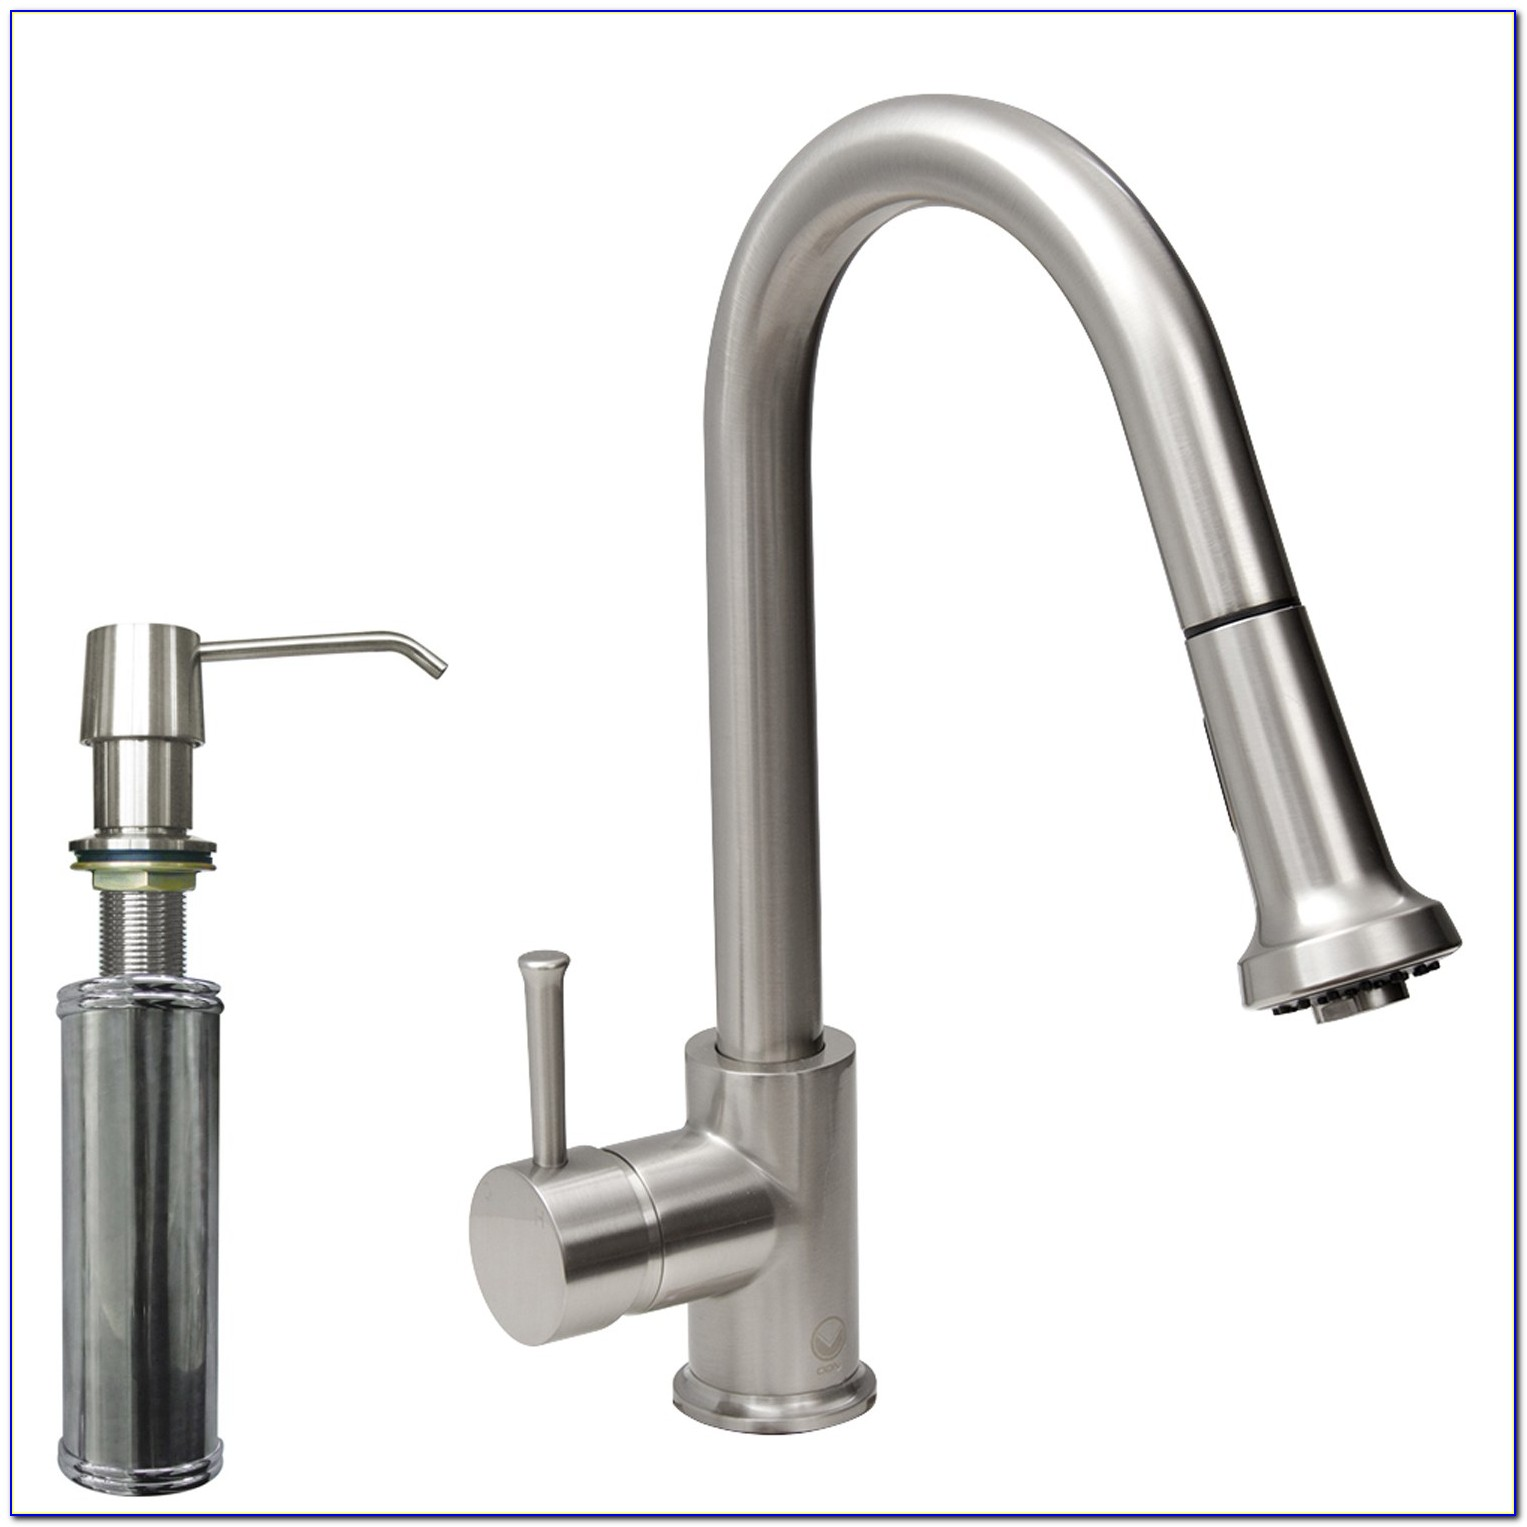 Kitchen Faucet With Separate Sprayer And Soap Dispenser